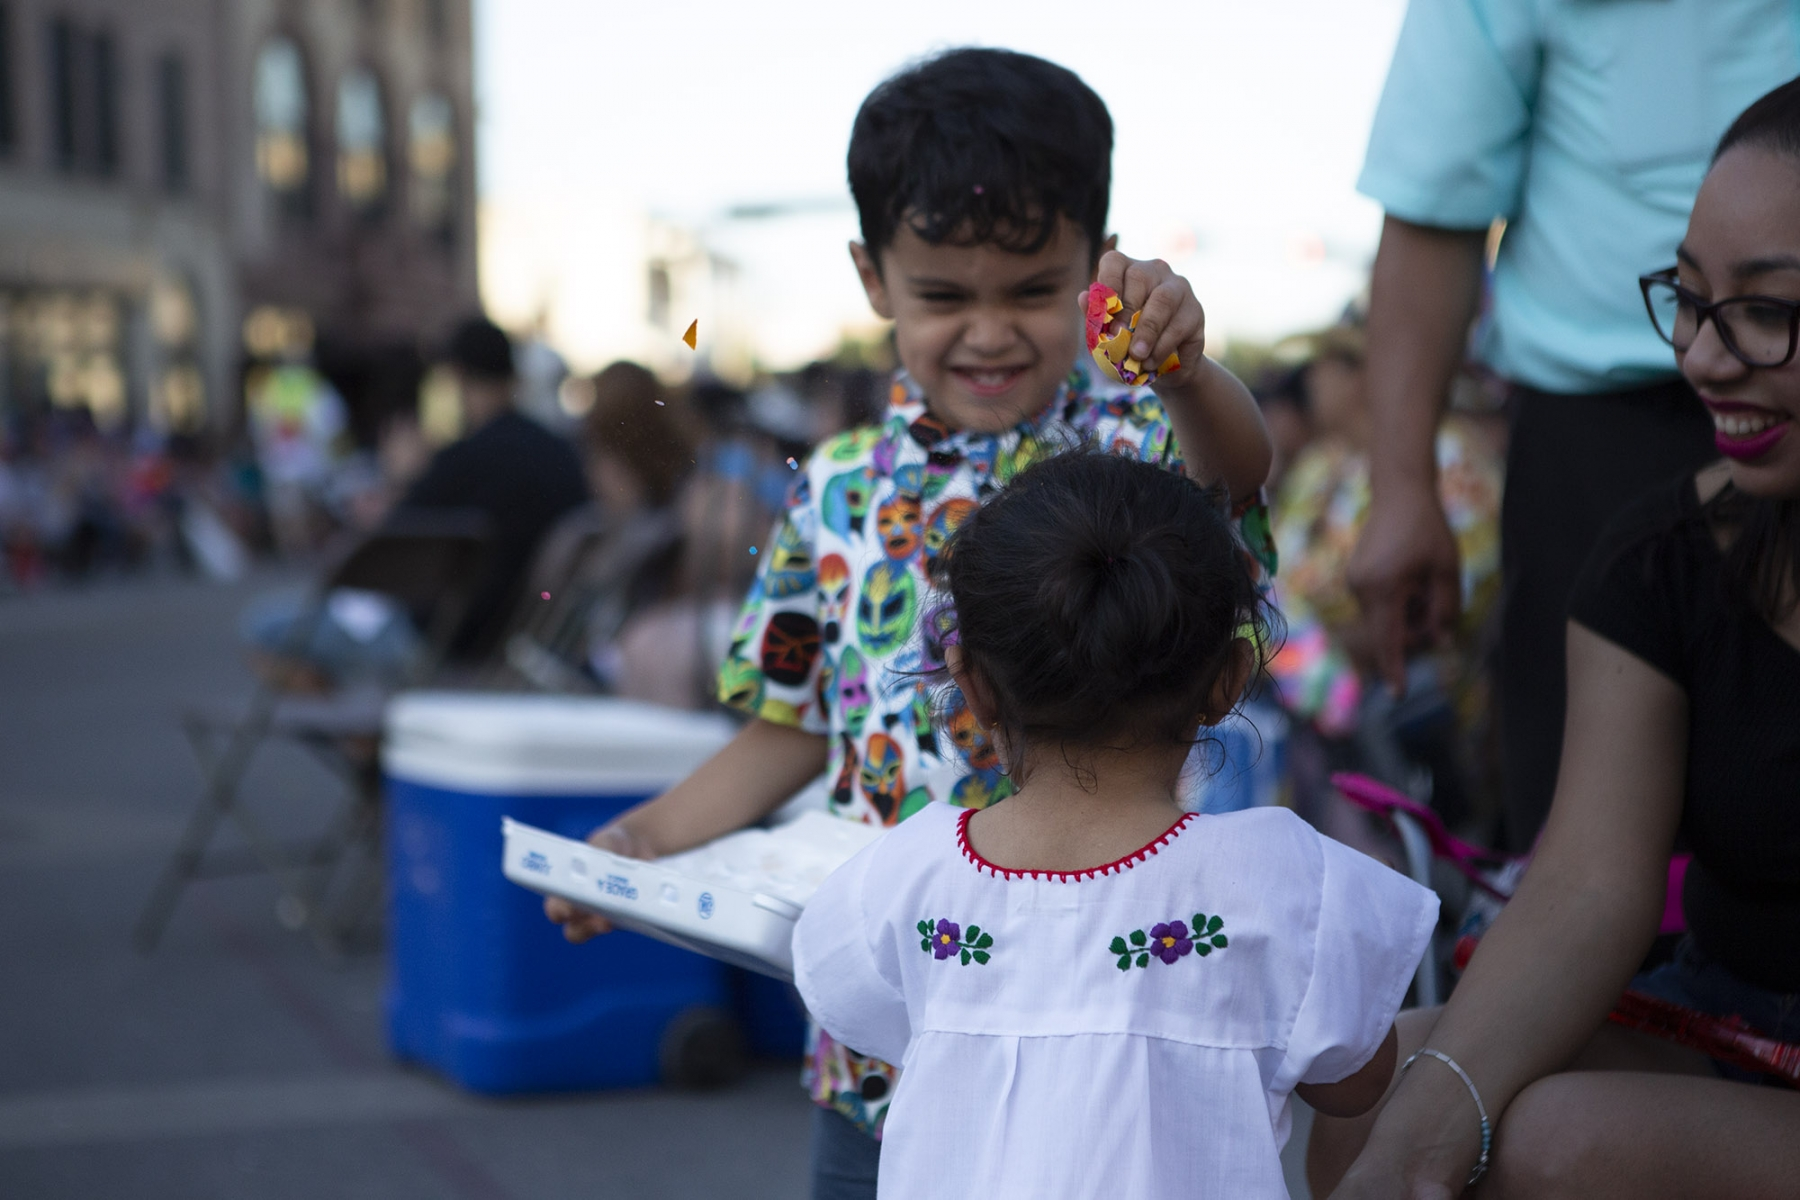 Isaiah Castaneda, 4, showers his sister in confetti while waiting for the Fiesta Flambeau Parade Saturday, April 27. <em>Photo by Kara Hawley | Heron contributor</em>